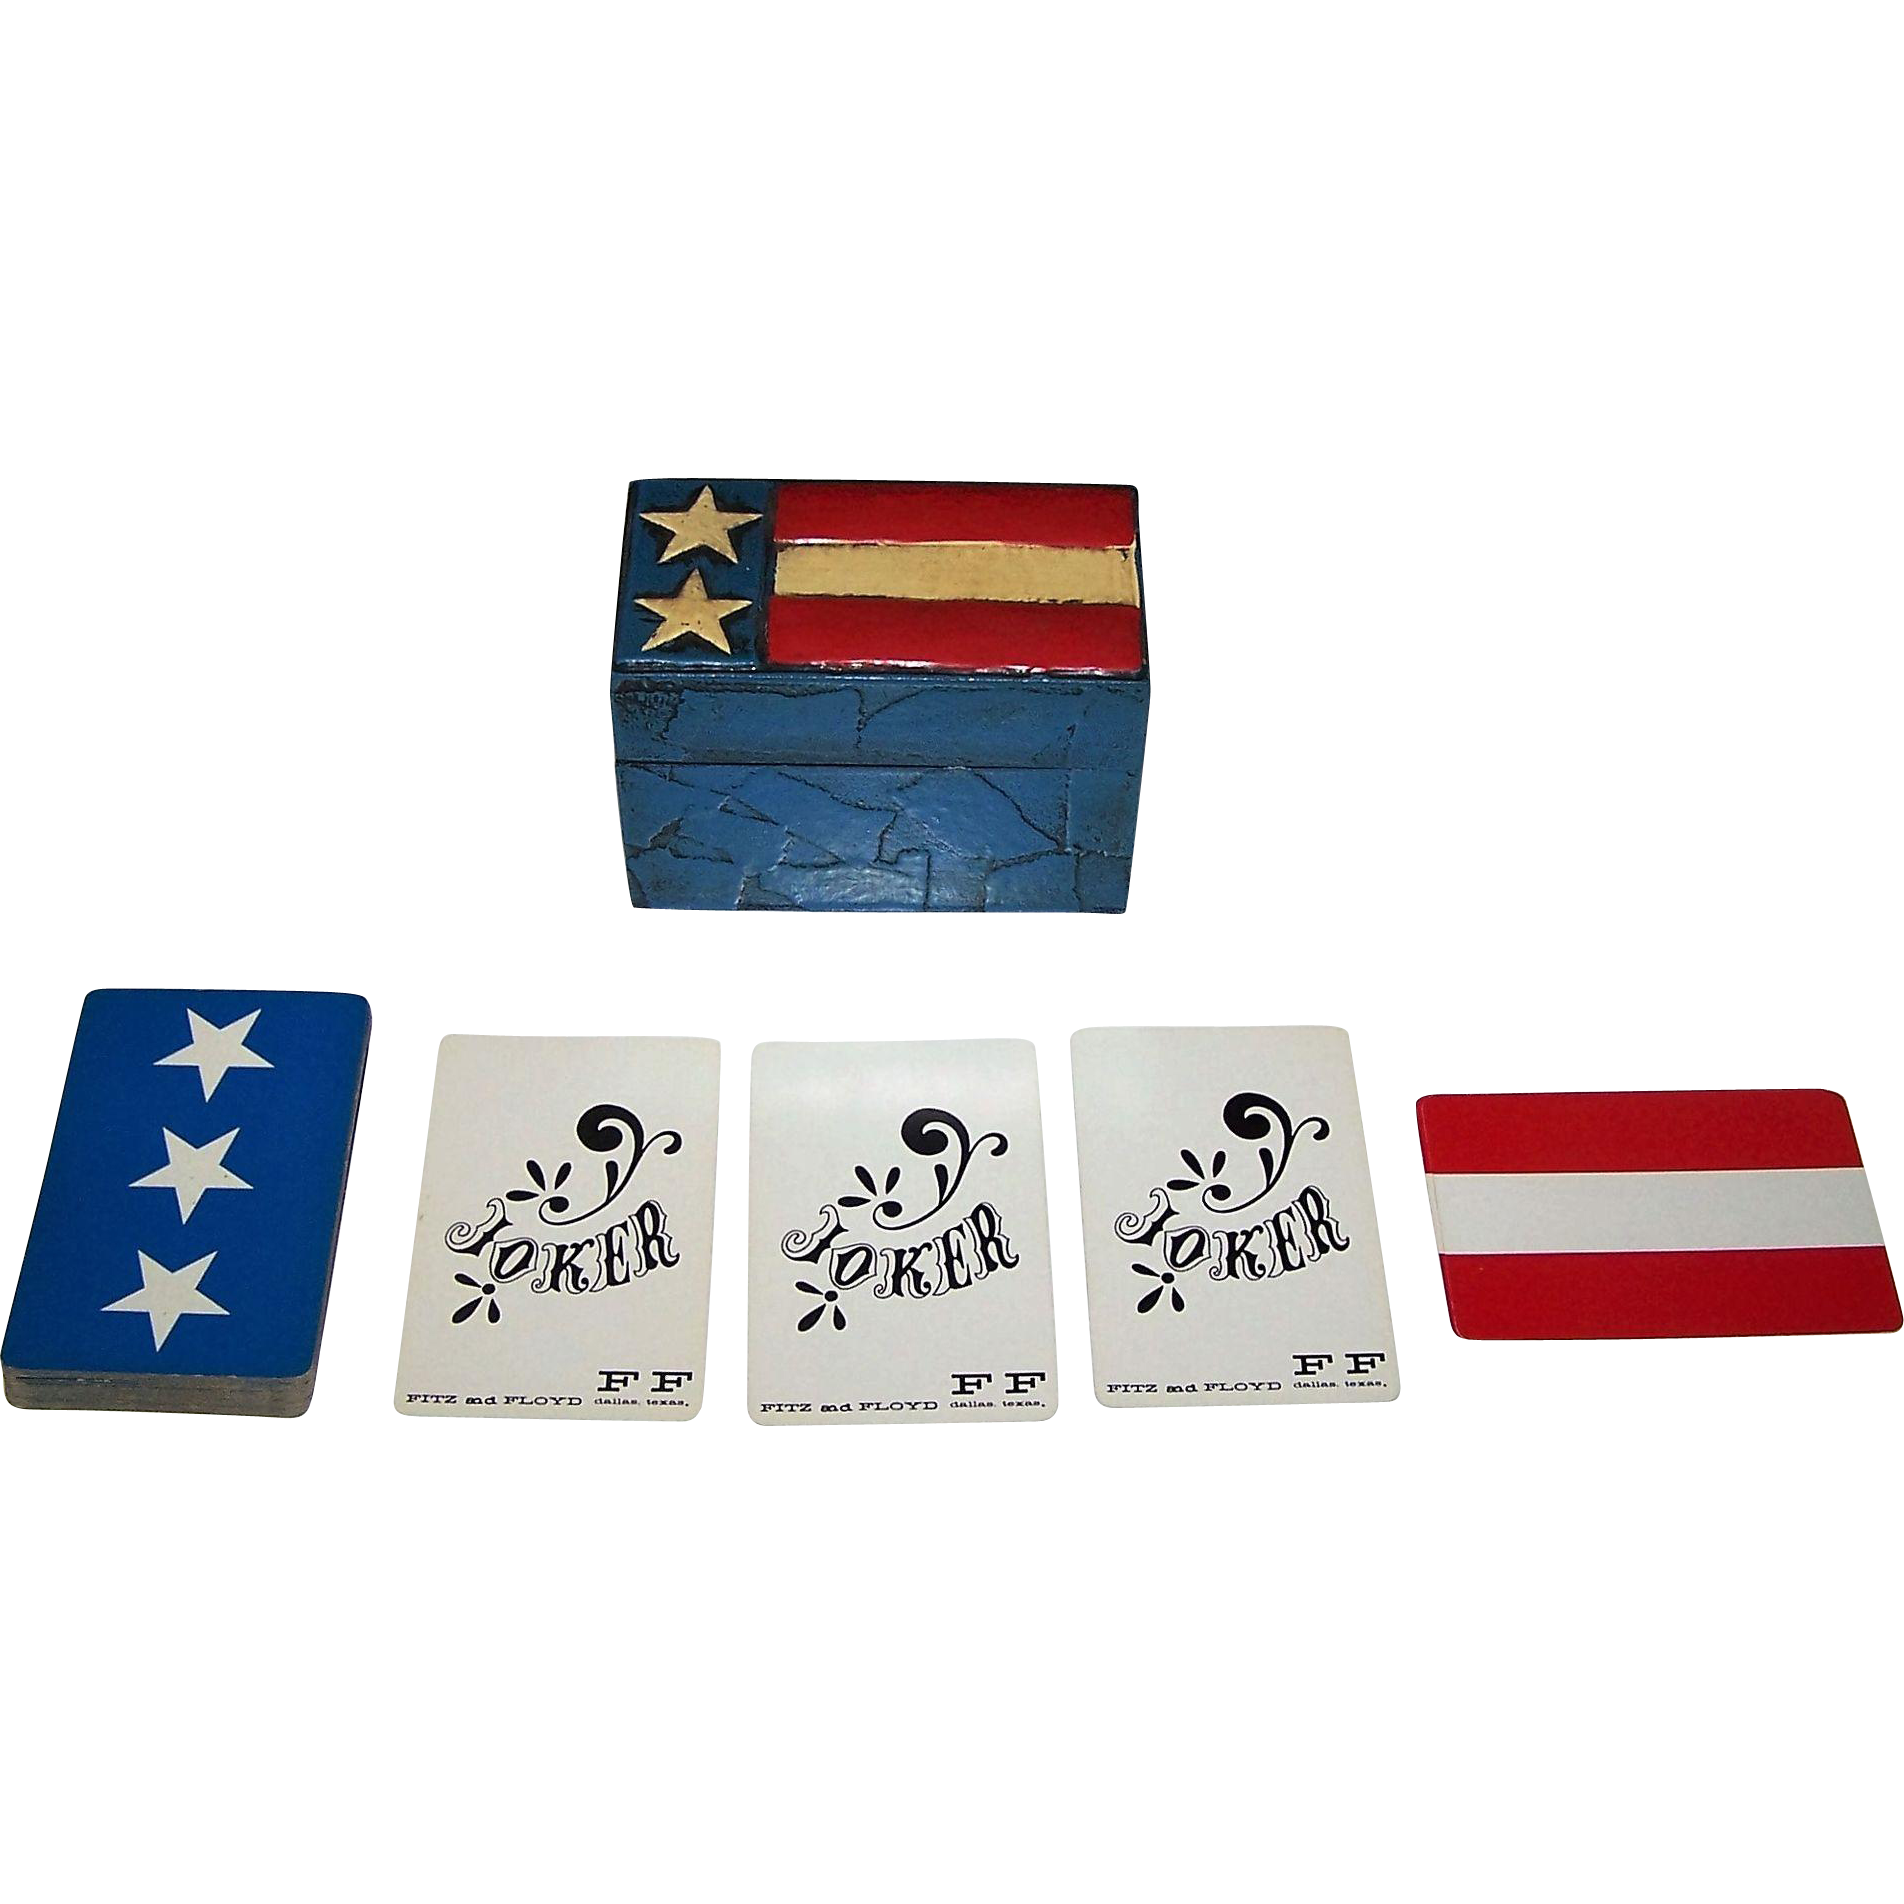 "Nintendo ""Fitz and Floyd"" Playing Cards (+ 2 Jokers) w/ Custom Painted Wood Box, Jasper Johns Flag, c. 1960s"